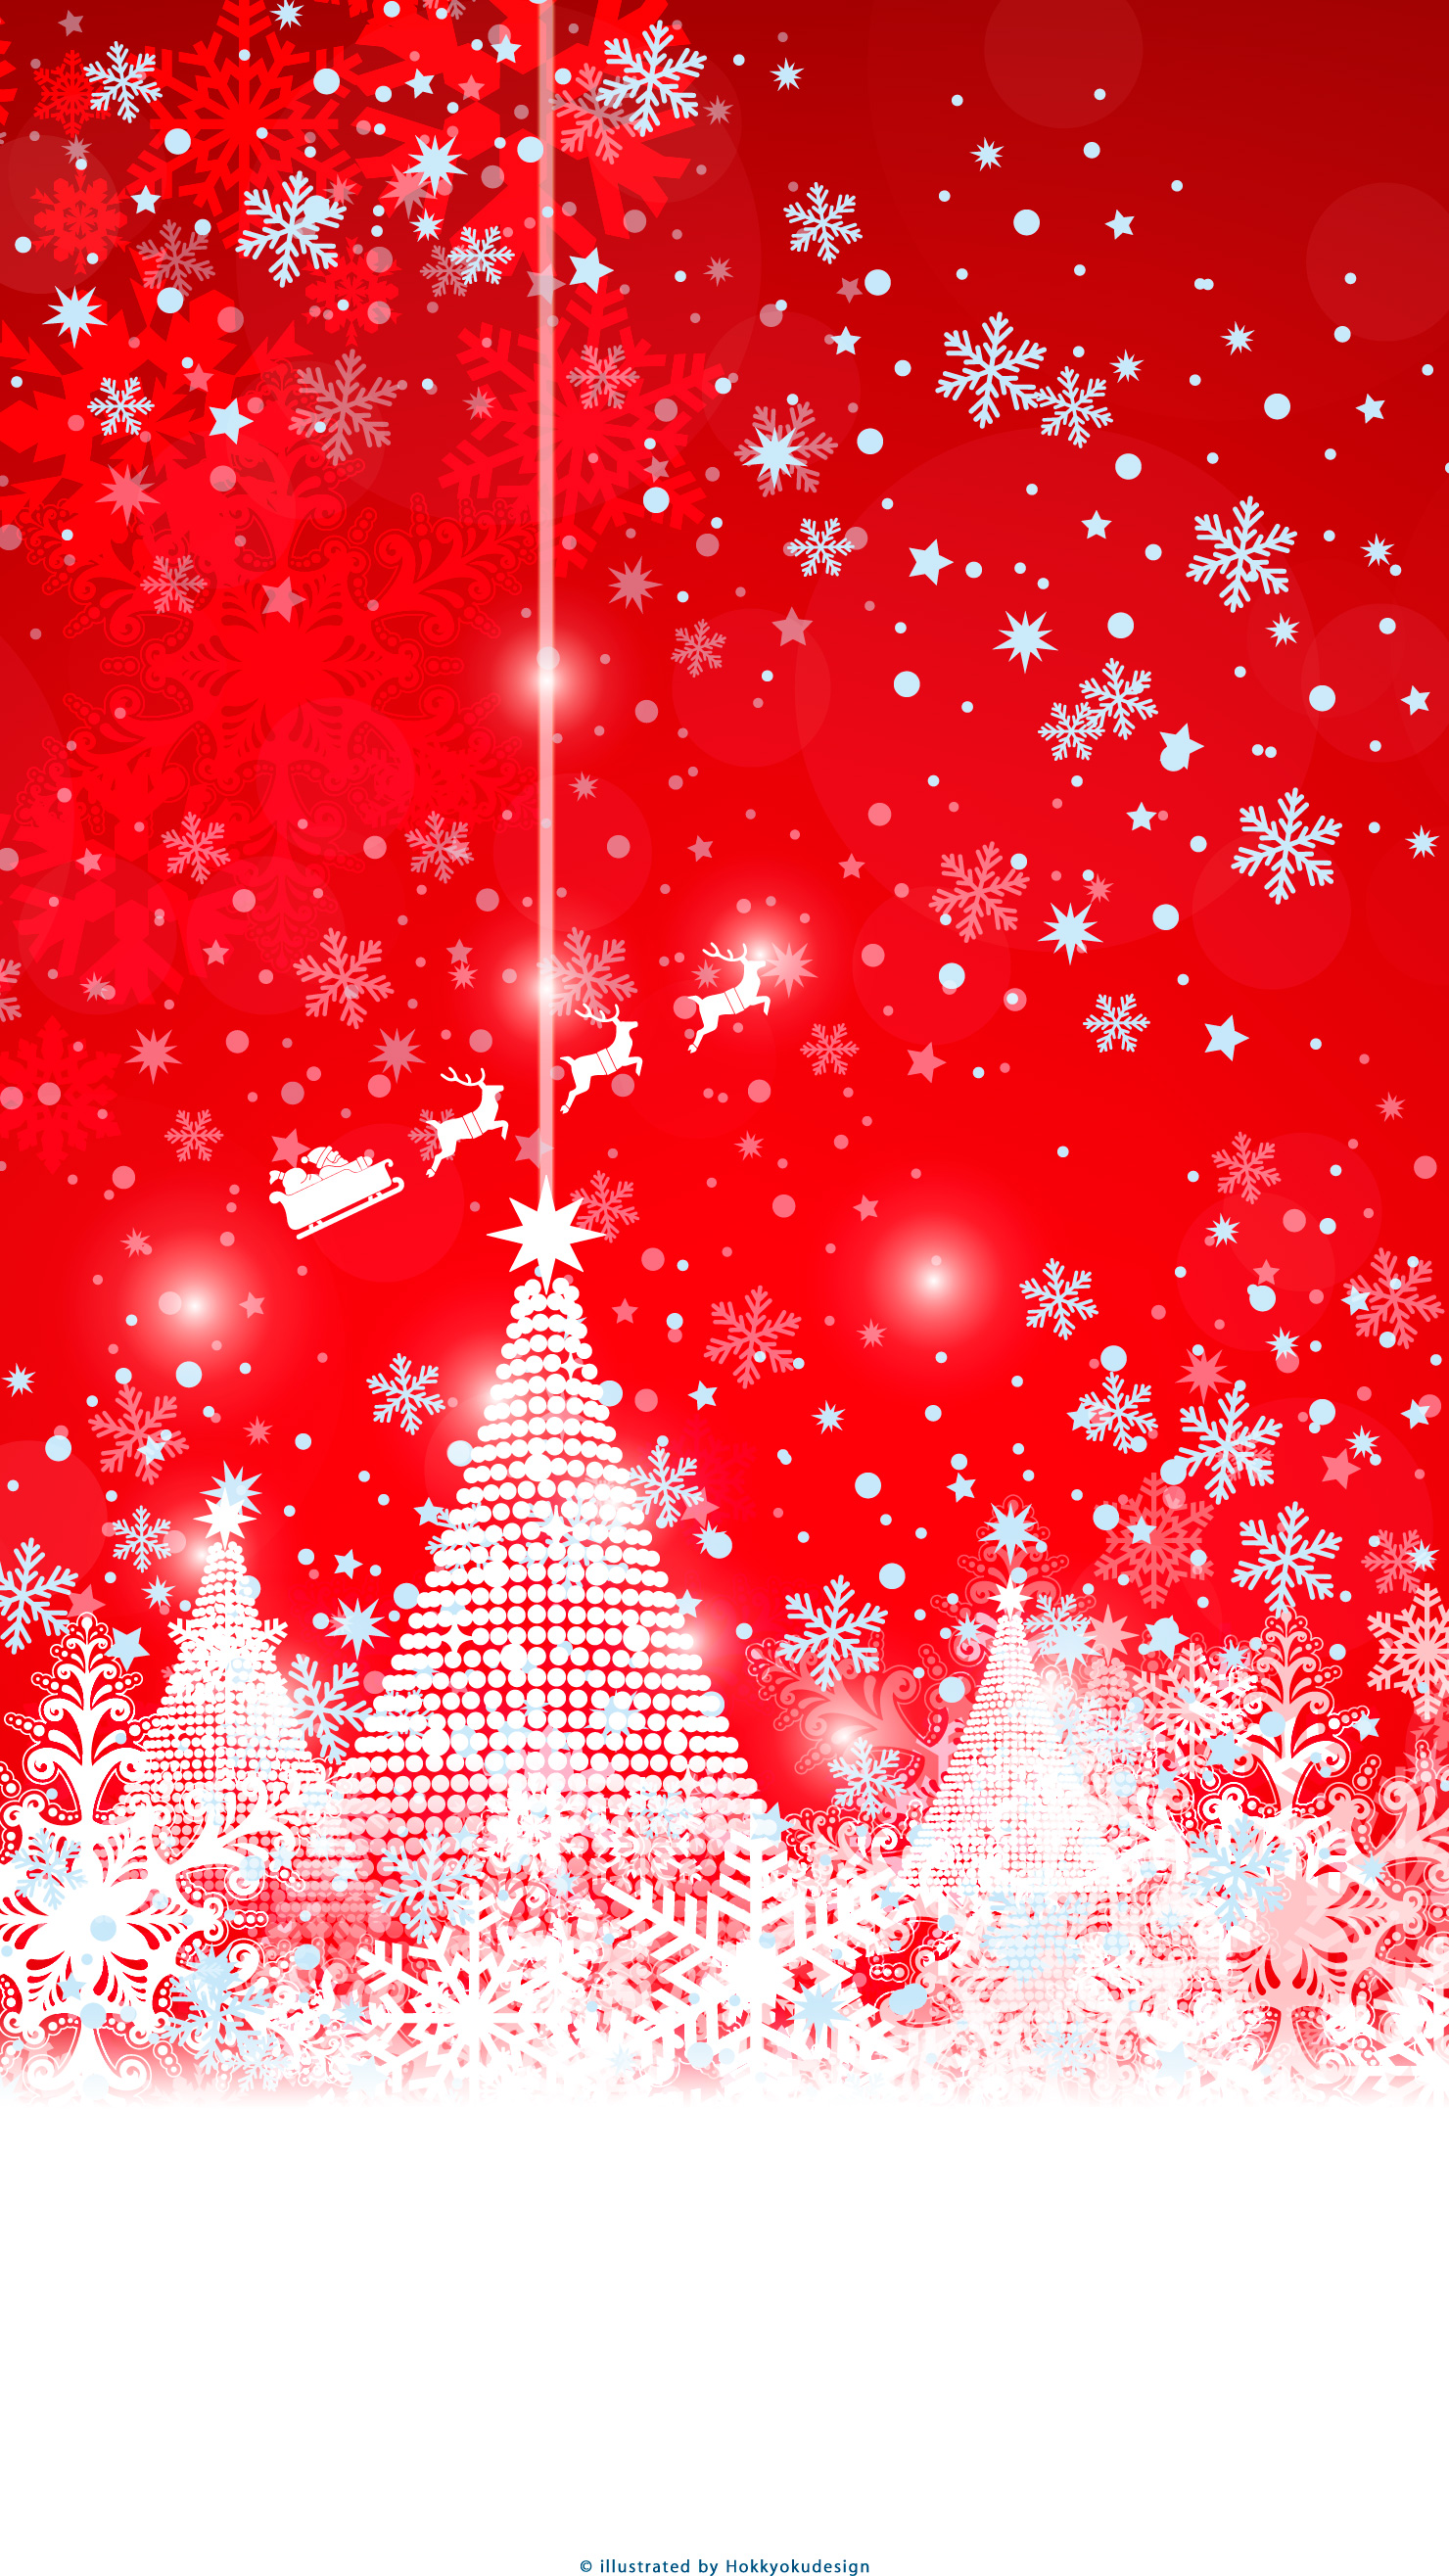 Iphone Christmas Red Wallpaper Christmas Tree Snow Crystal Santa Claus Winter Iphone Wallpaper